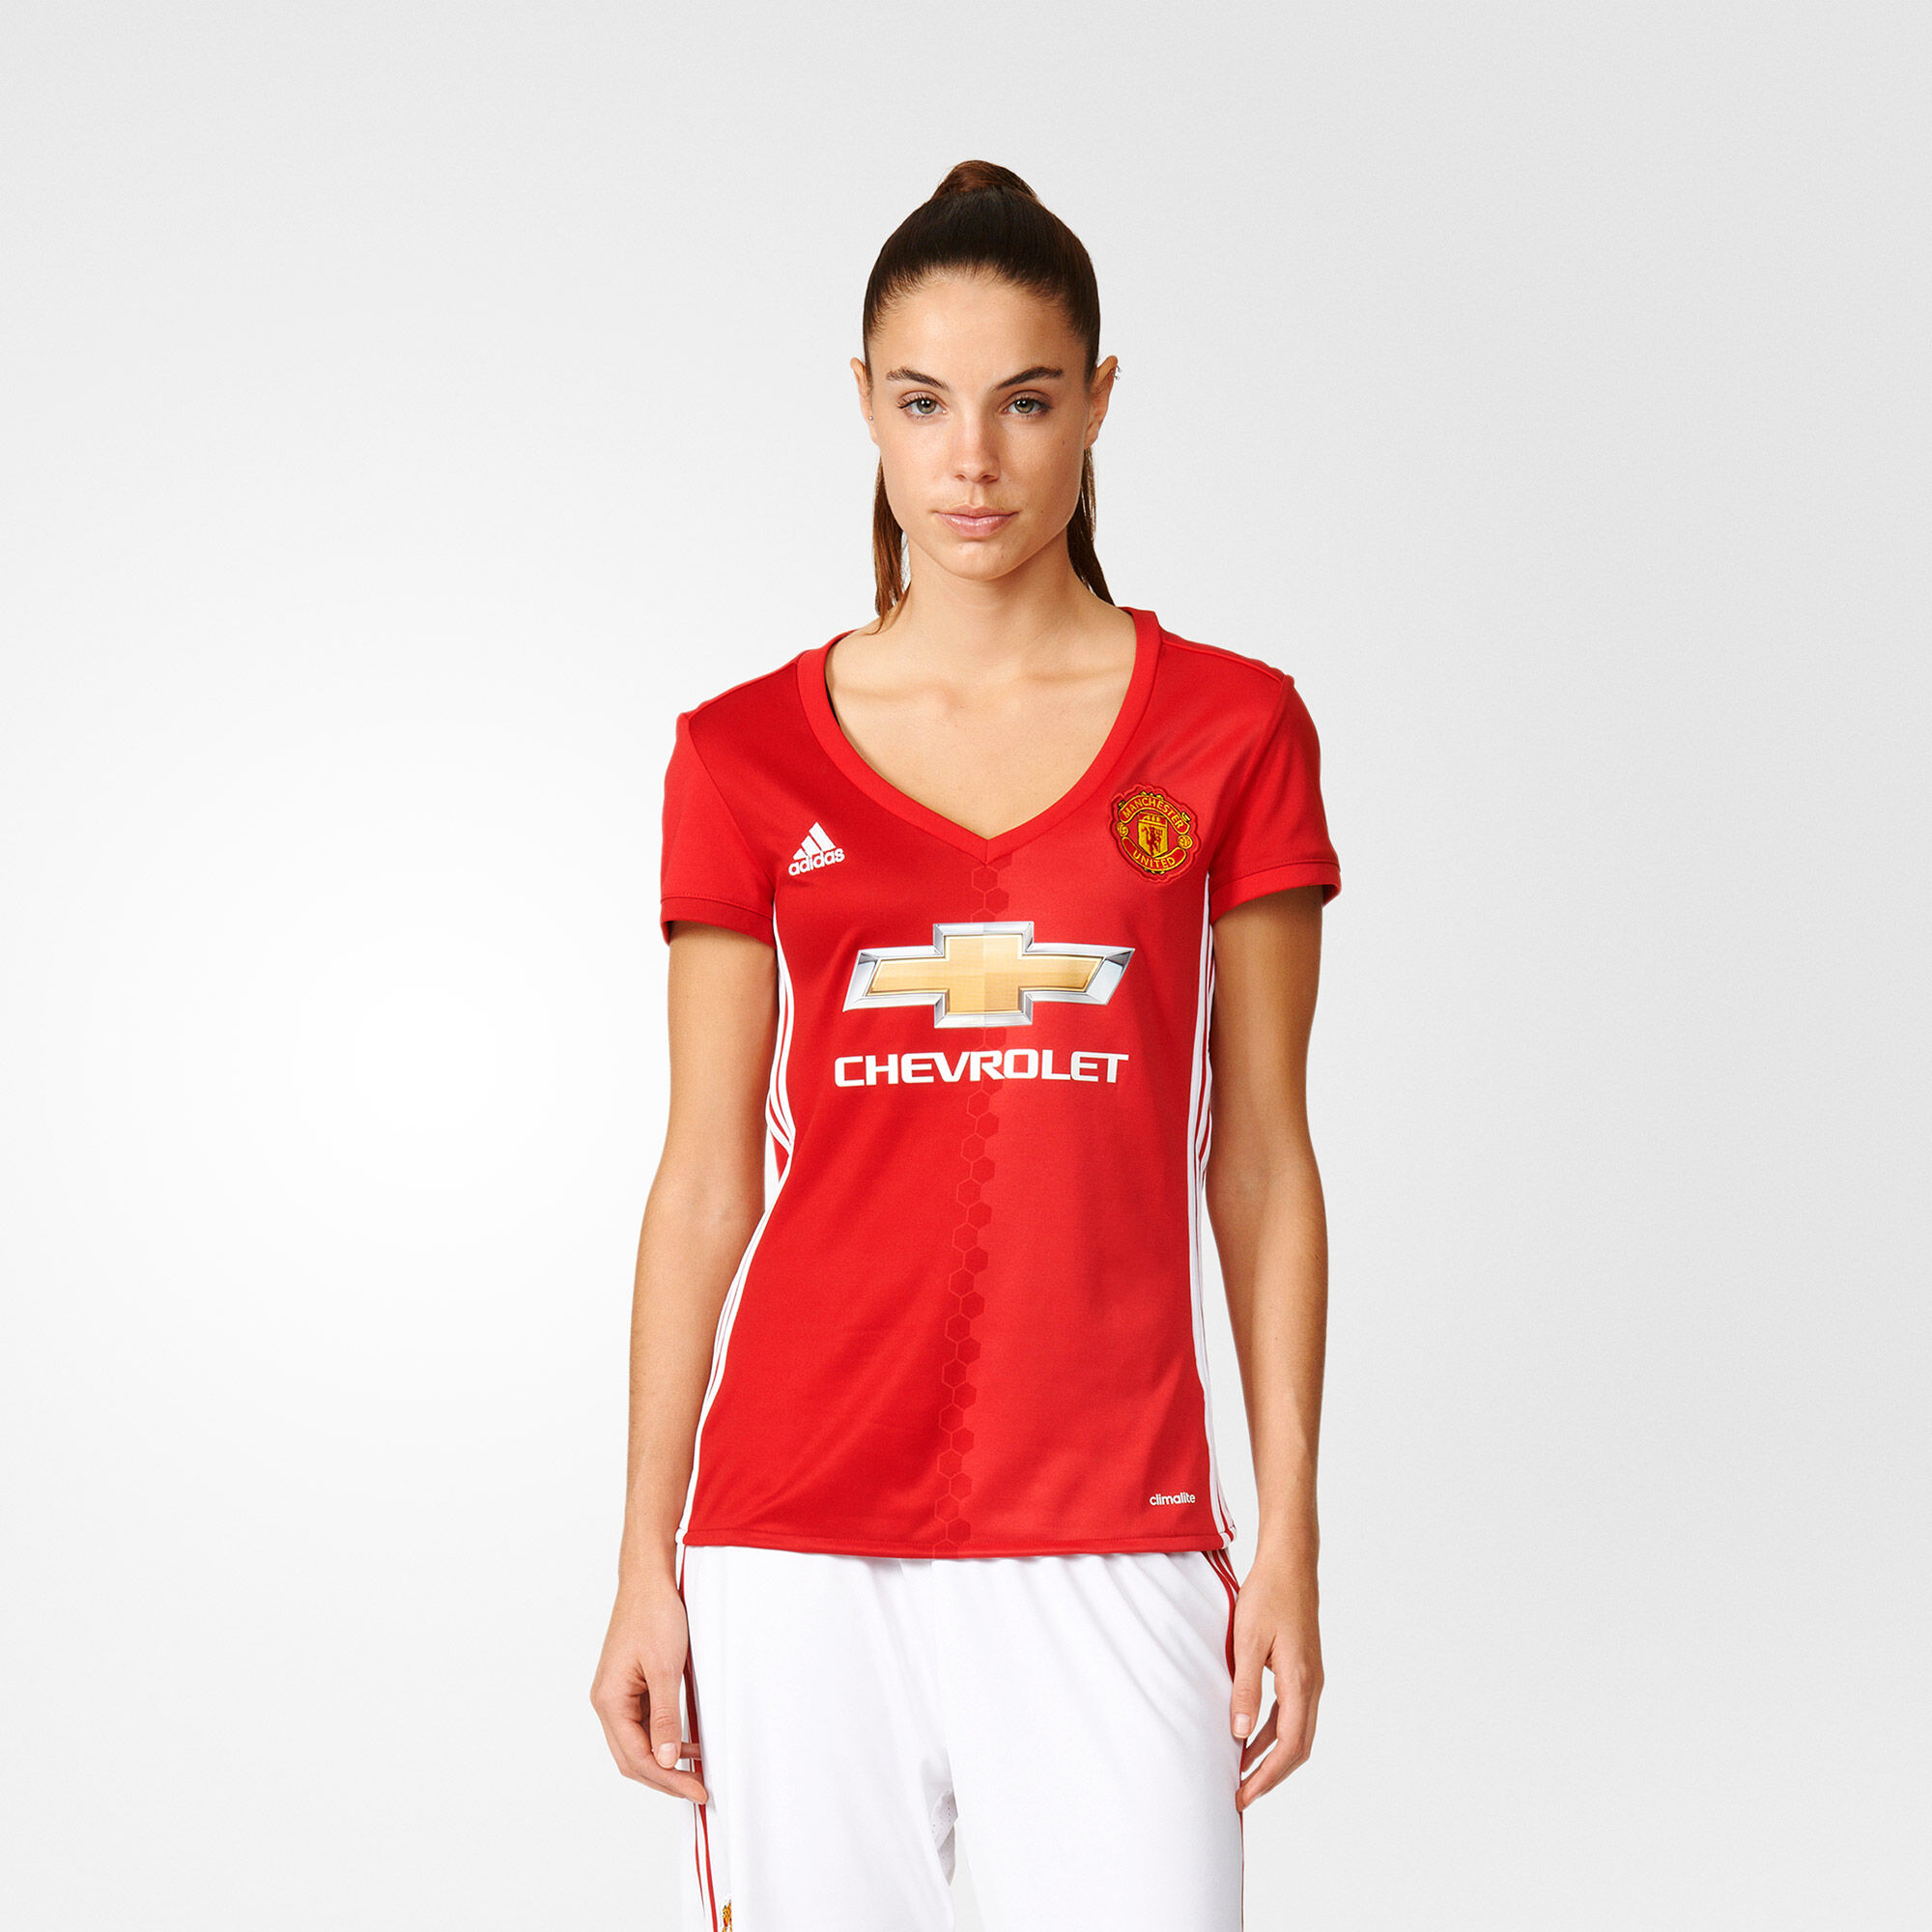 Design your own football jersey t-shirt - Adidas Manchester United Fc Home Replica Jersey Real Red Power Red White Ai6709